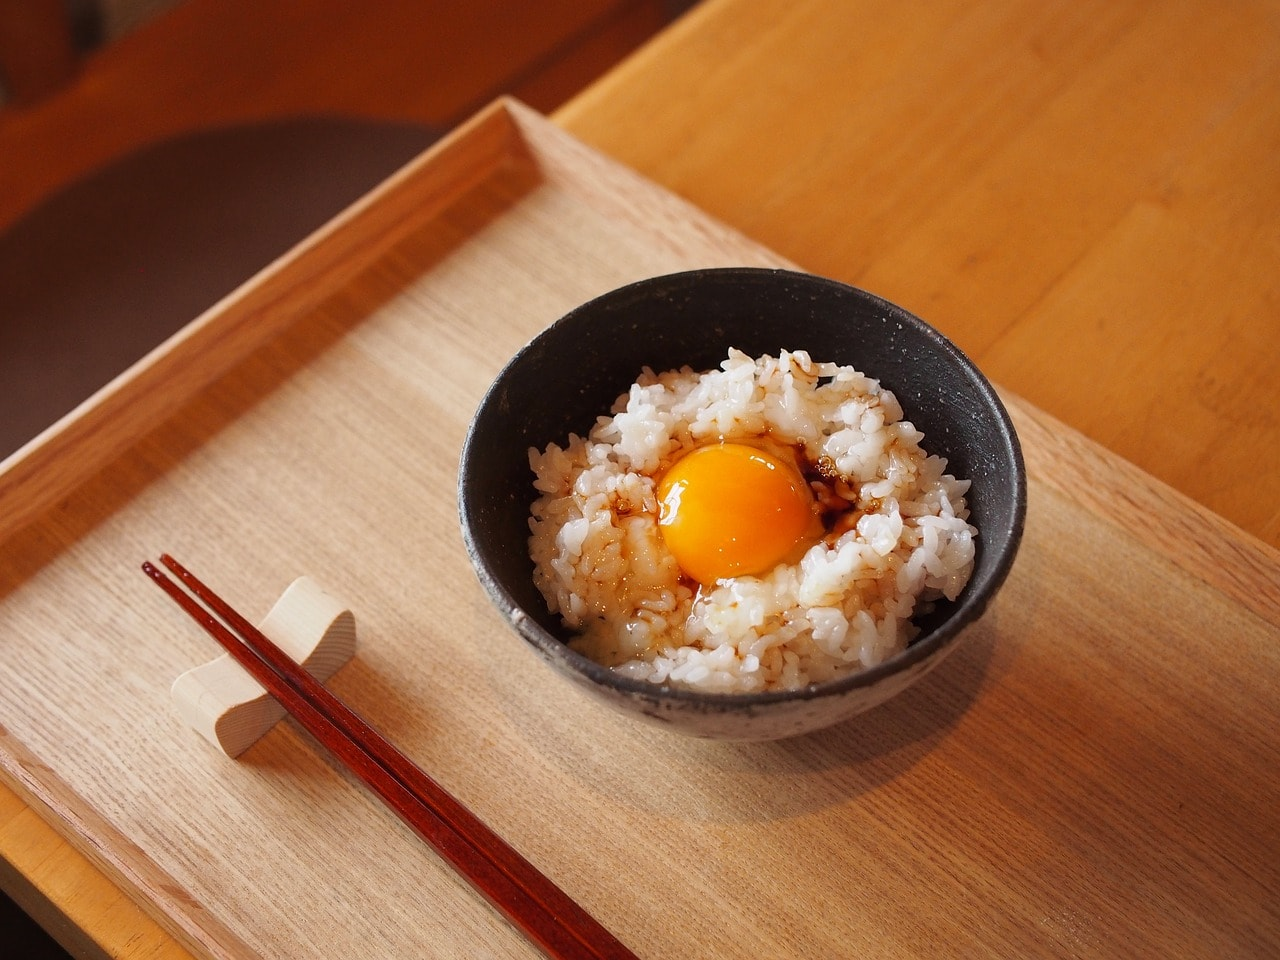 Japanese breakfast rice and egg